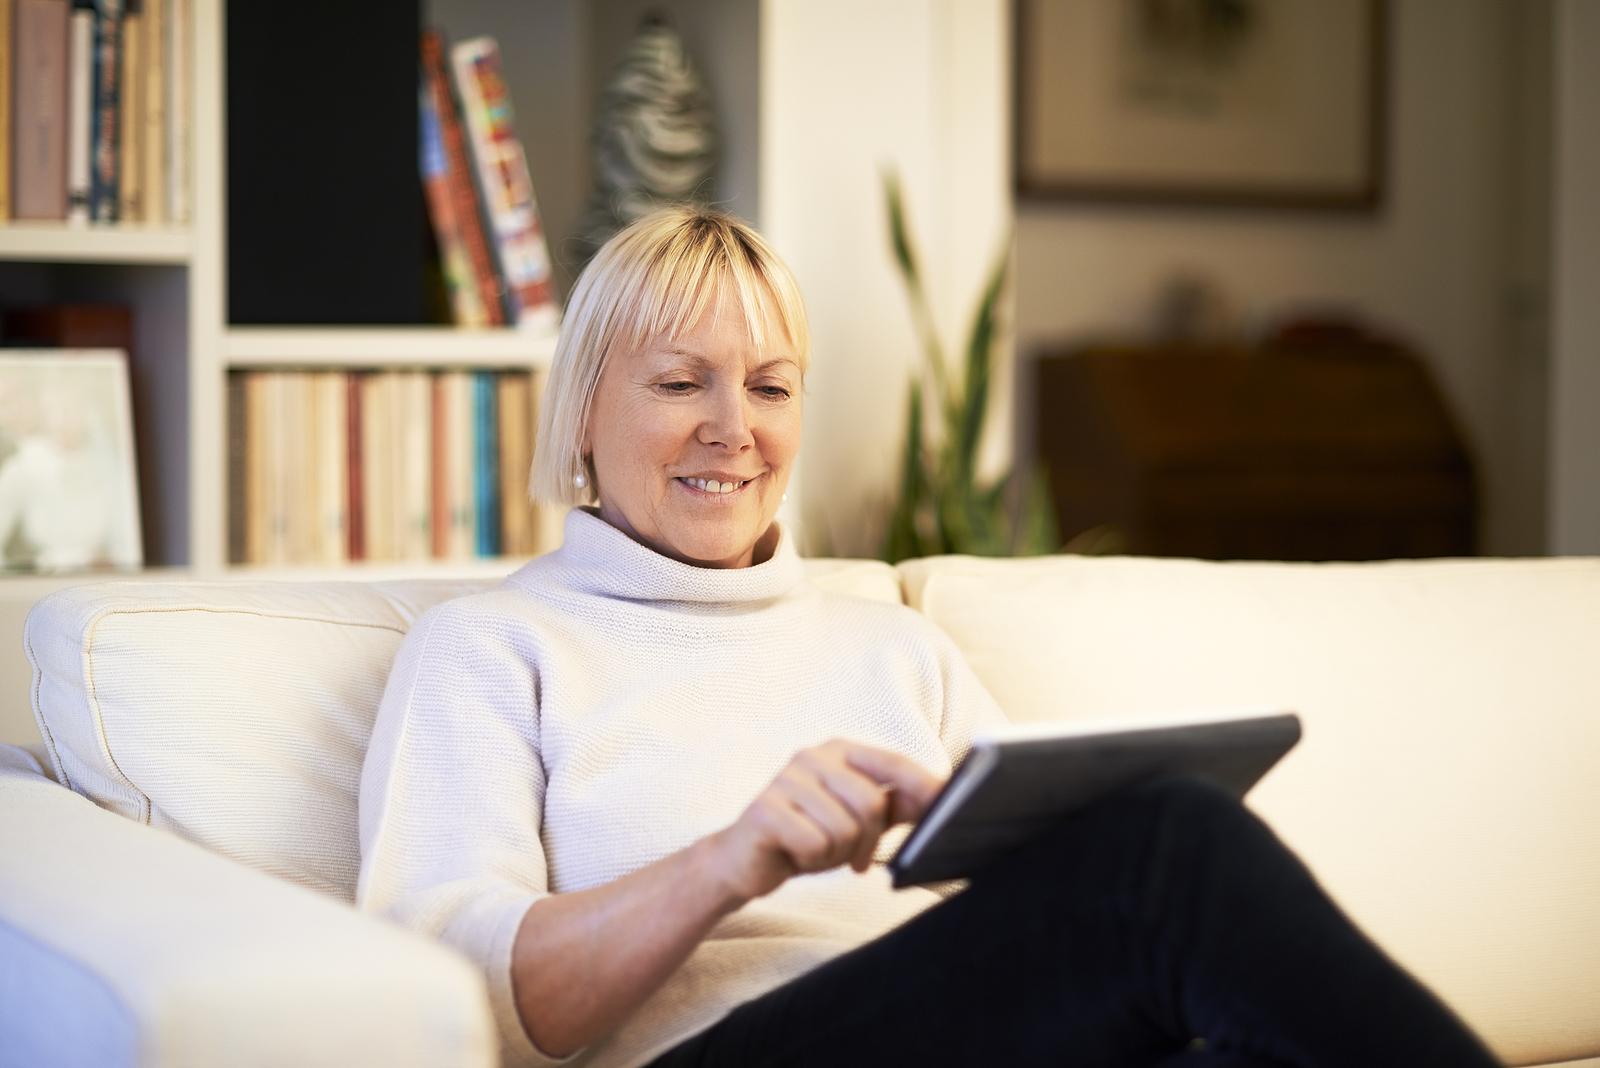 Senior woman uses home care technology to check in with her loved ones